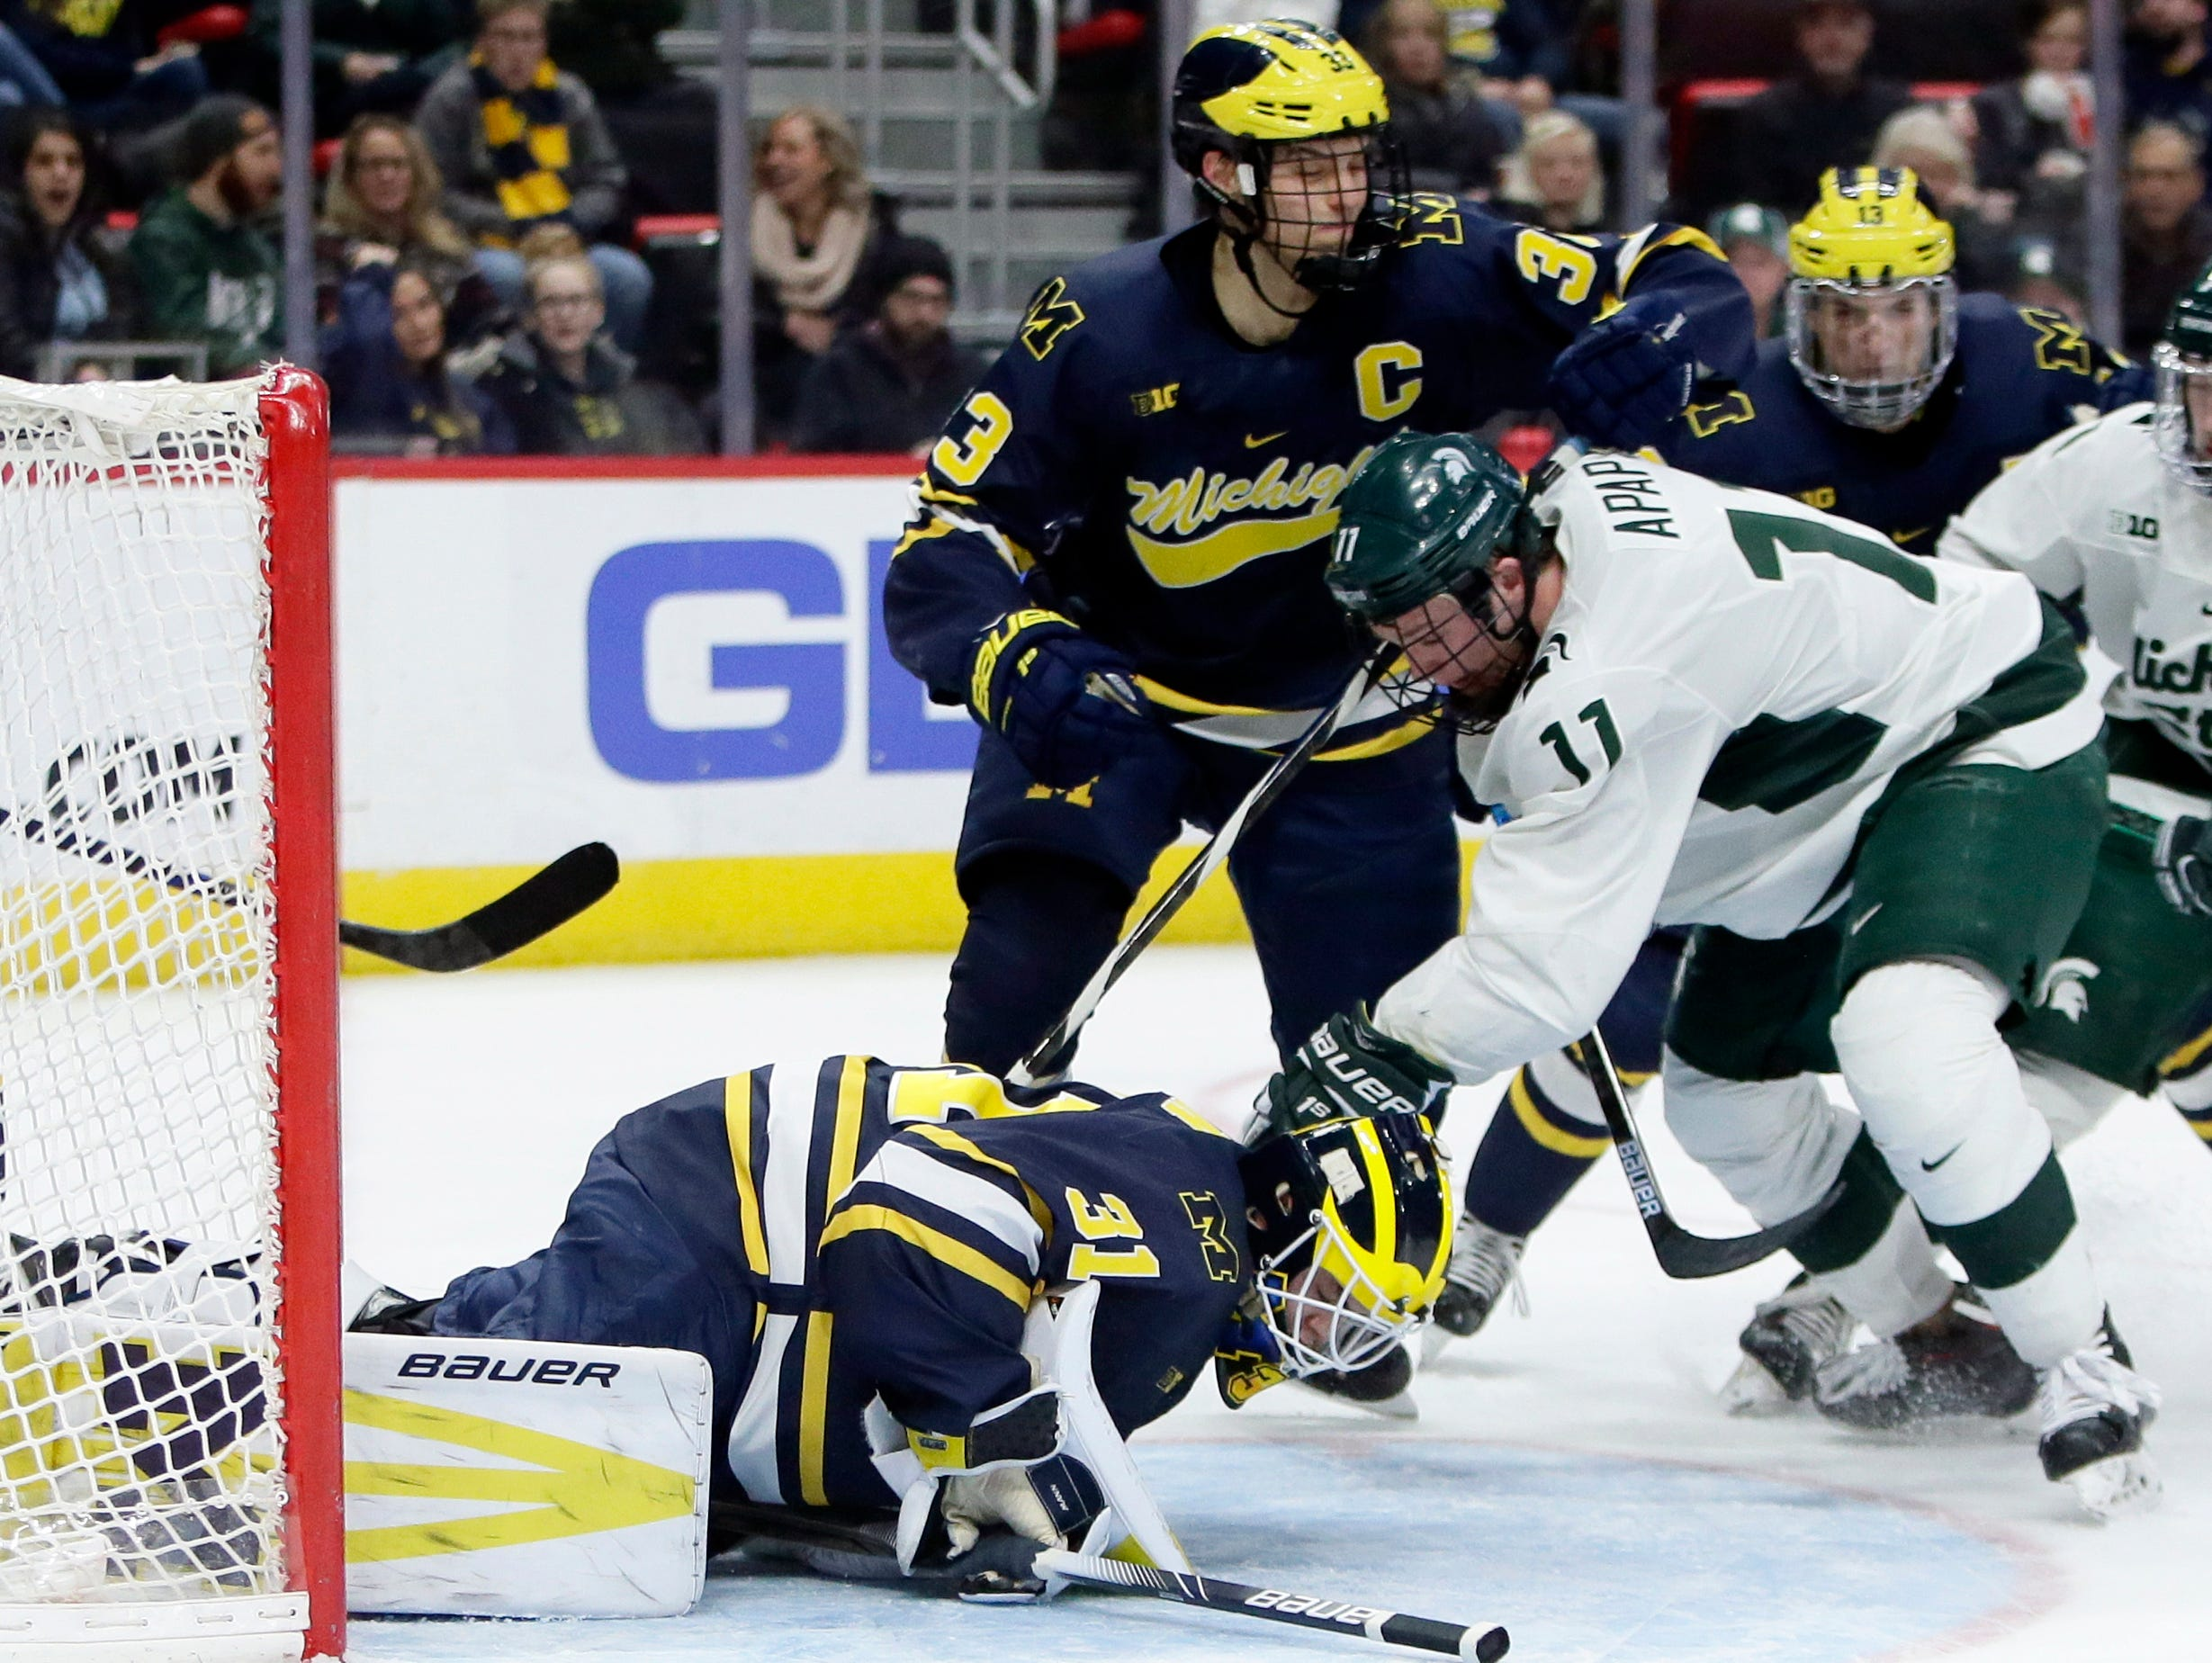 Michigan goaltender Strauss Mann covers the puck on a shot by Michigan State forward Tommy Apap with Michigan defenseman Joseph Cecconi helping defend the goal during the second period on Saturday, Feb. 9, 2019, at Little Caesars Arena.